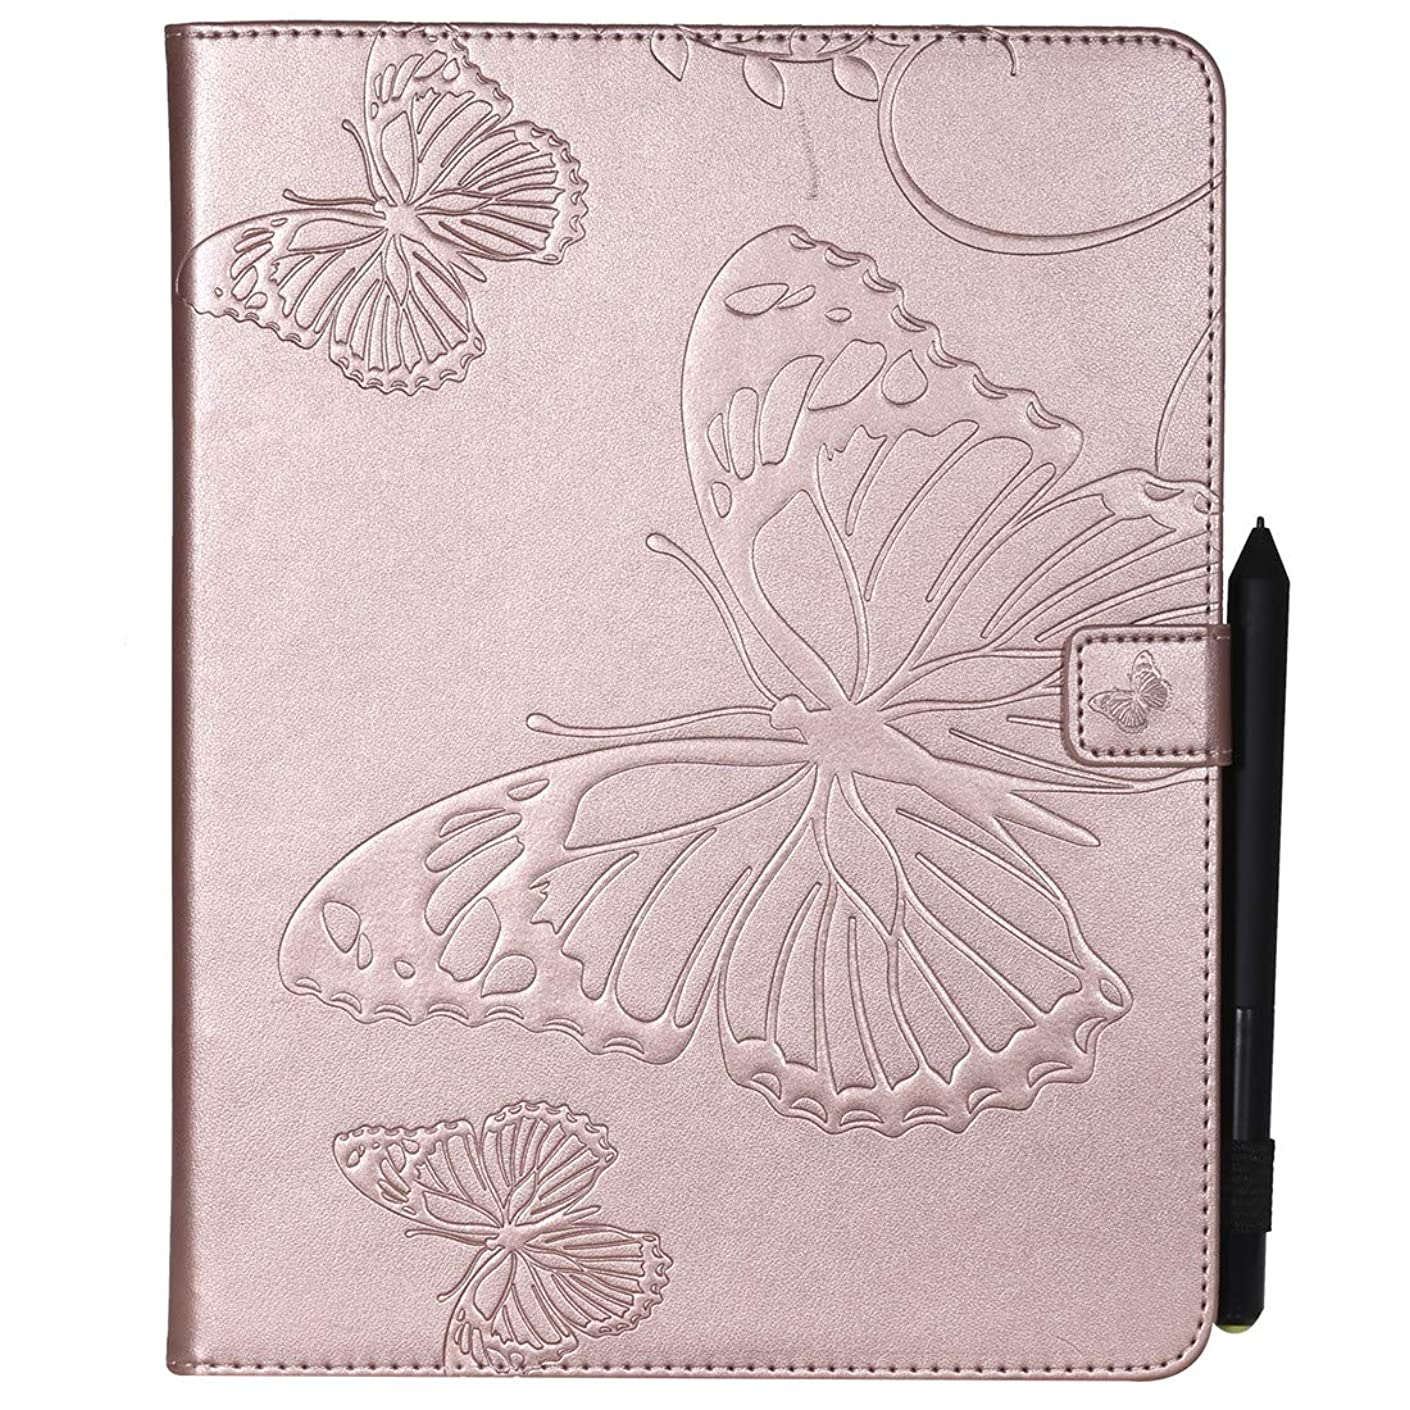 Love Sound Case for iPad Pro 12.9 Inch 2018, Emboss Butterfly PU Leather Slim Fit Shell Stand Folio Protective Case Cover with Card Slots for Apple iPad Pro 12.9 Inch 2018 Release (3rd Gen), Rose Gold